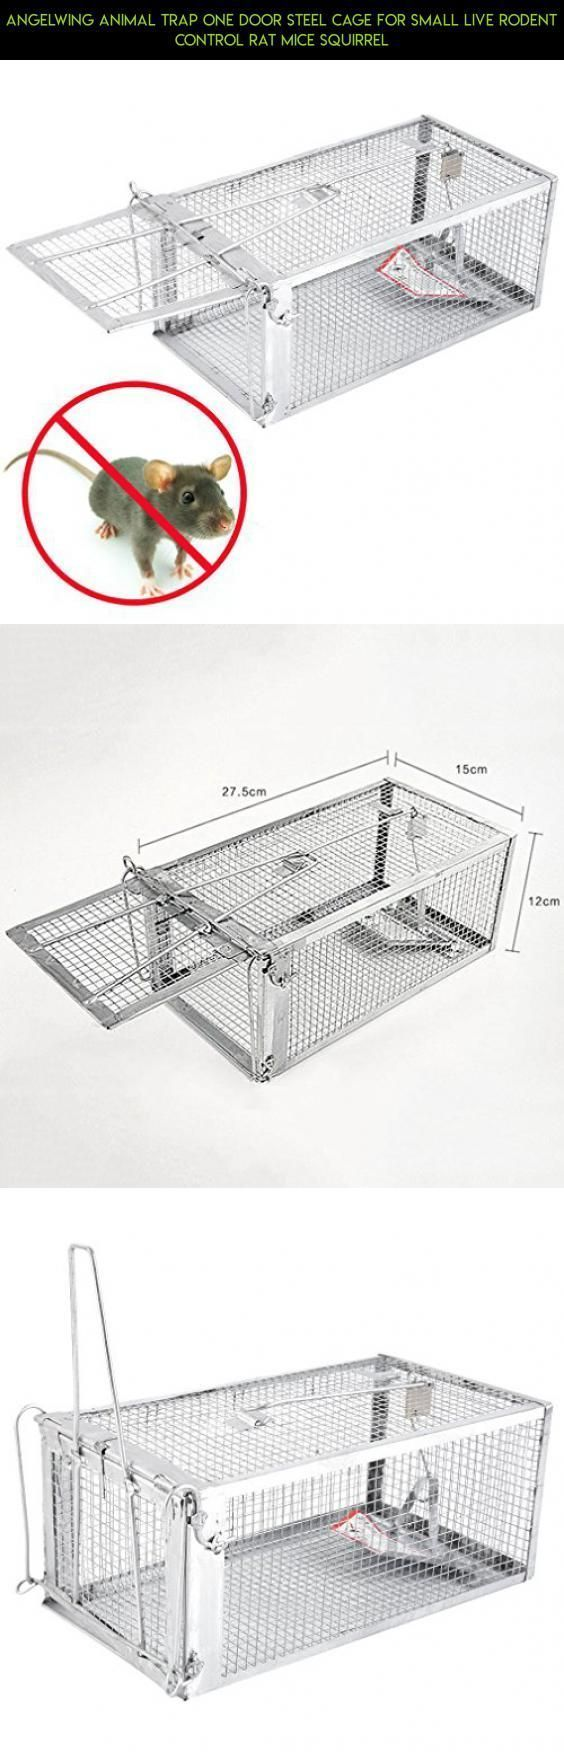 Angelwing Animal Trap One Door Steel Cage for Small Live Rodent Control Rat Mice